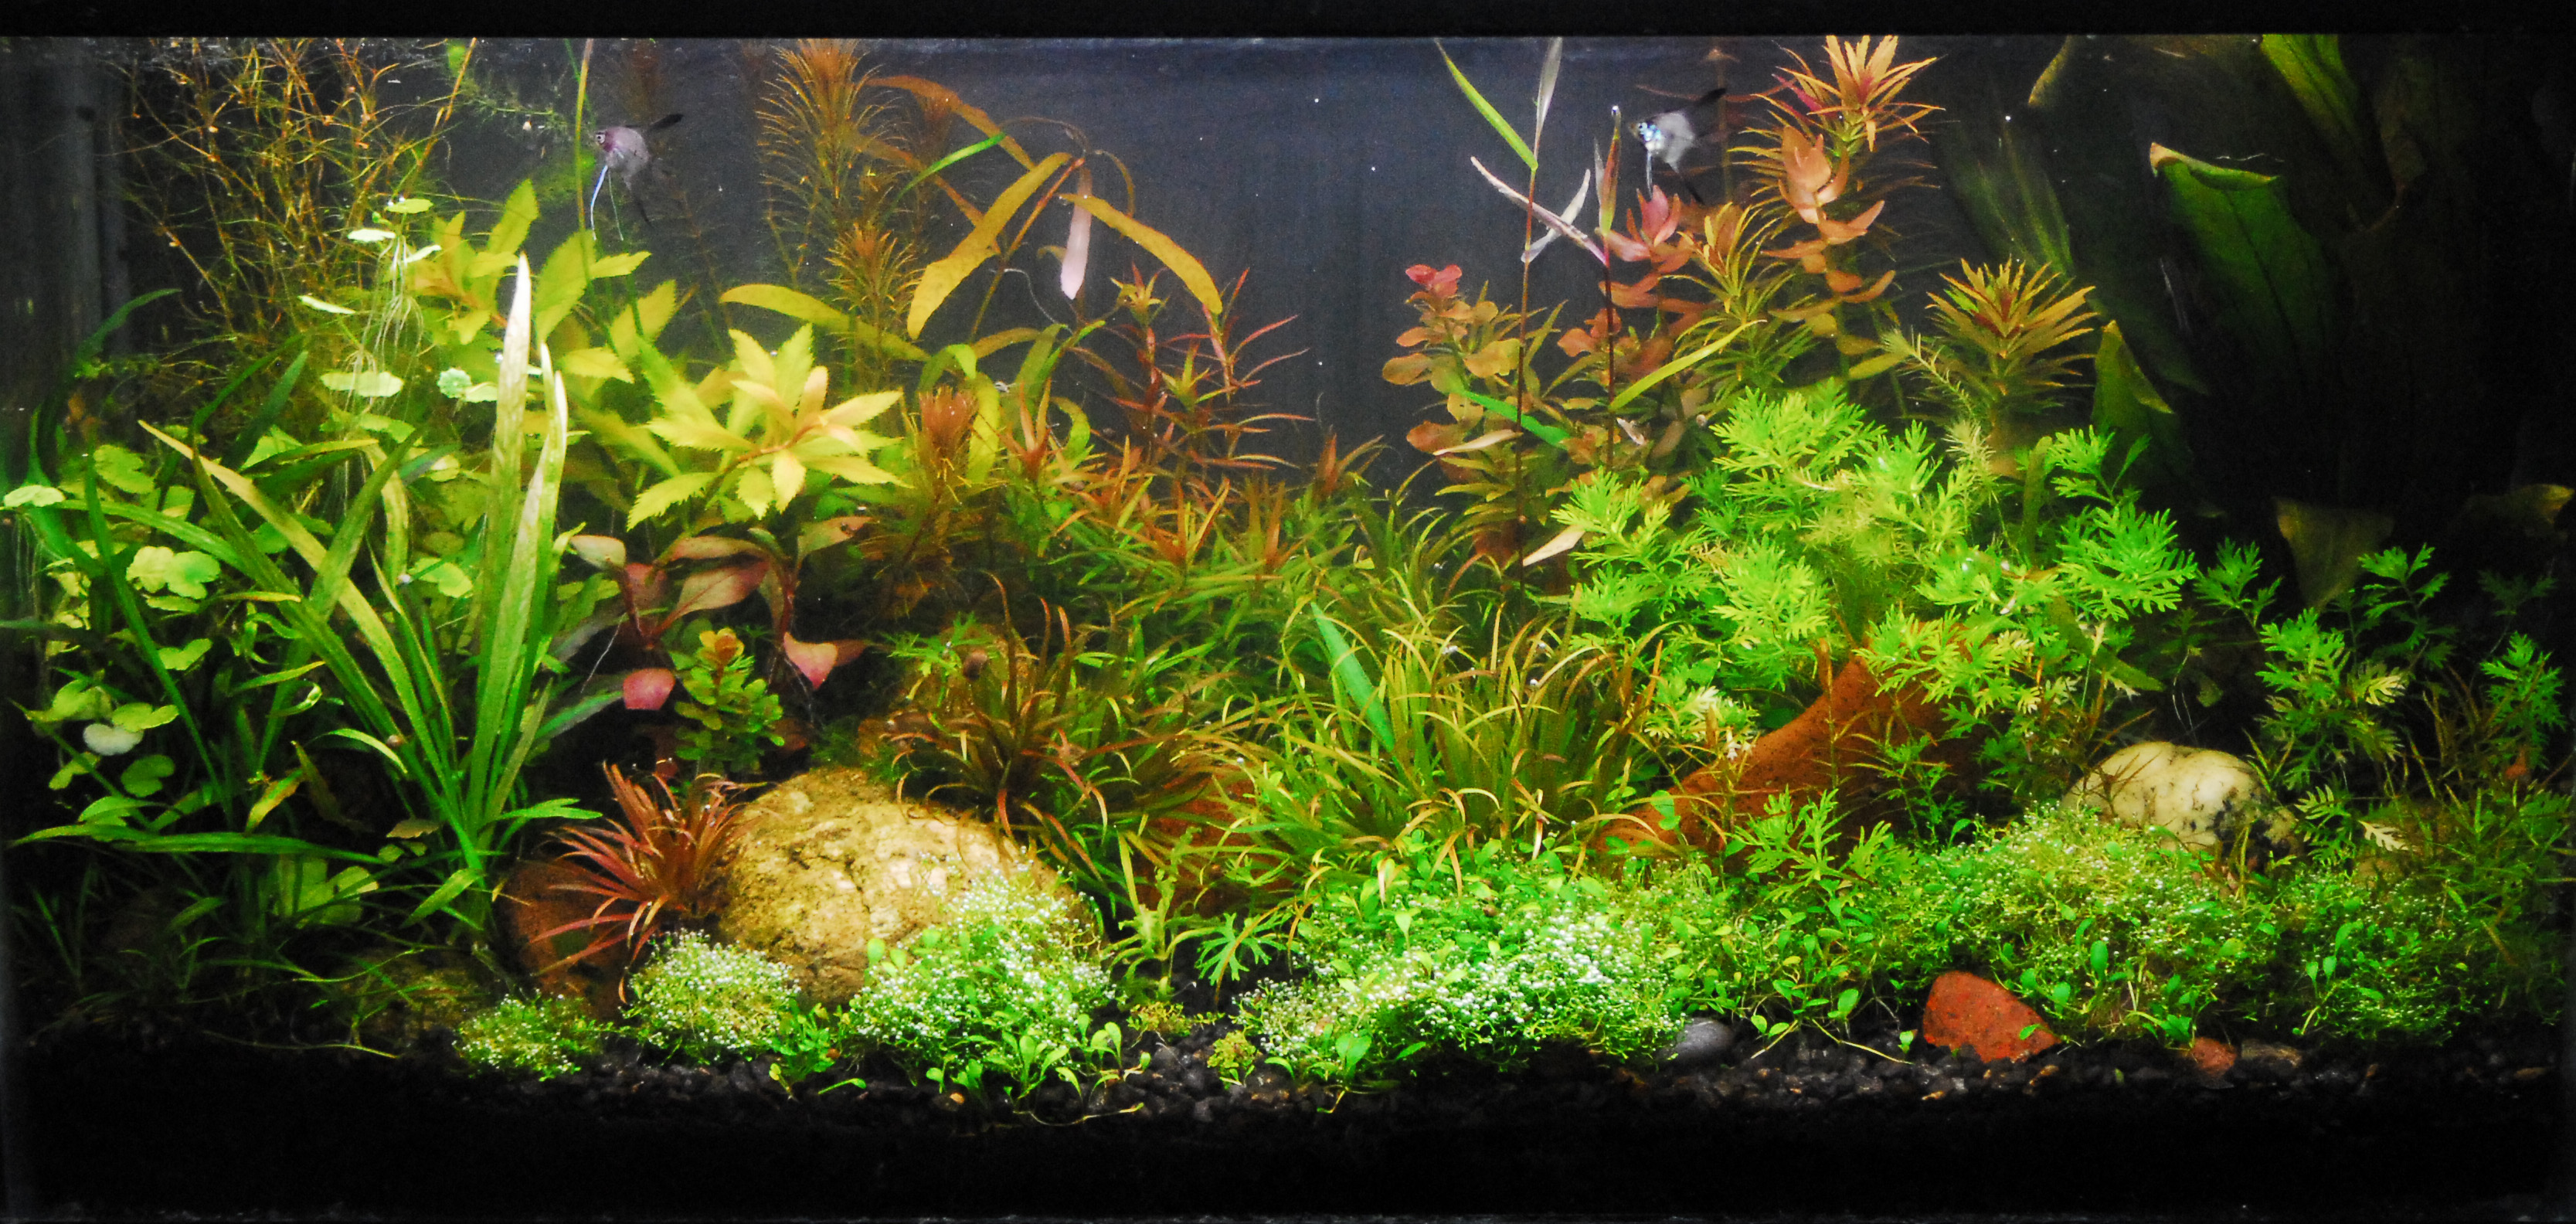 Aquarium Plants Decorations